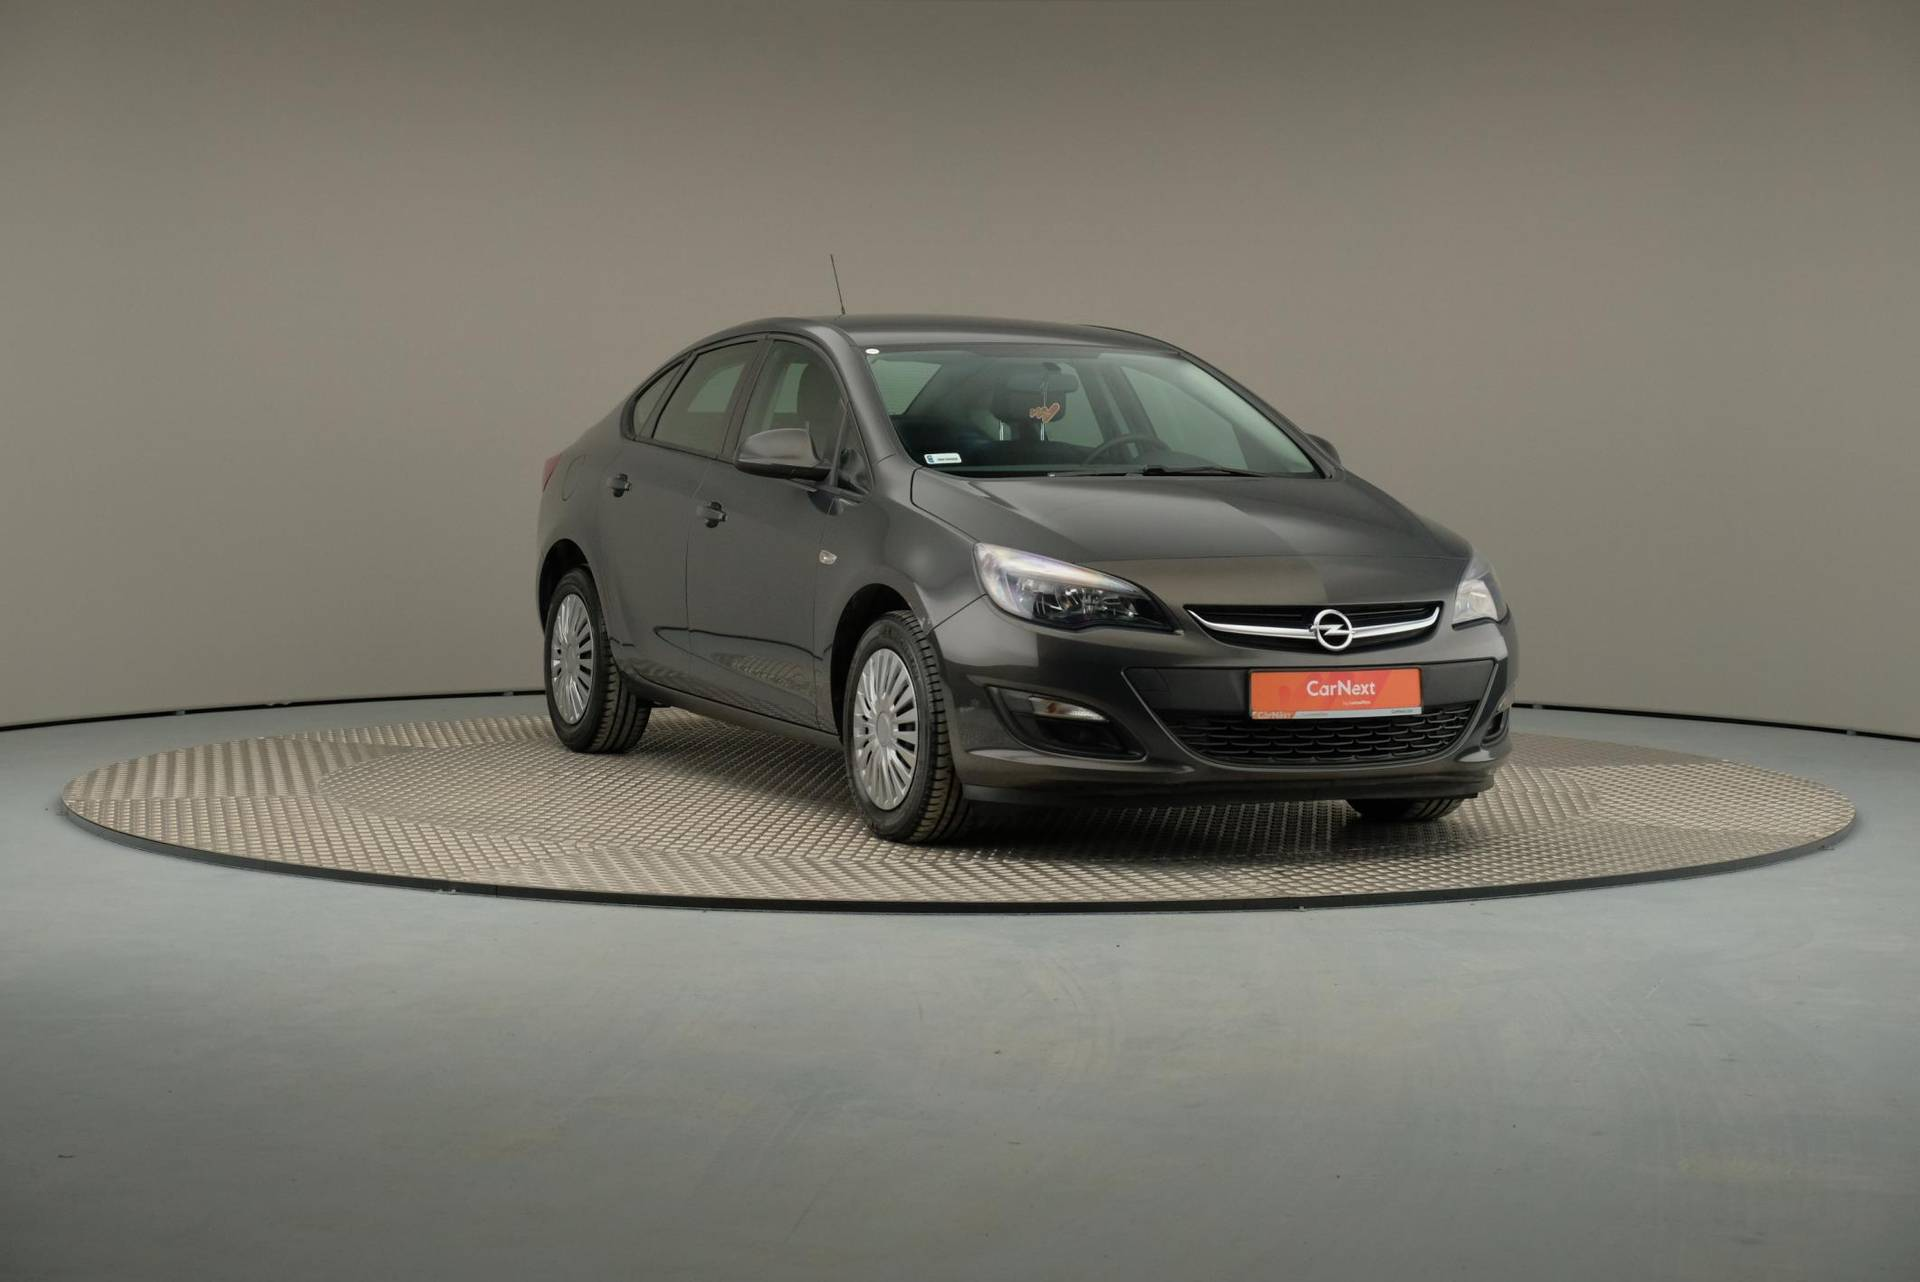 Opel Astra Astra 1.6 Twinport 115km, 360-image29